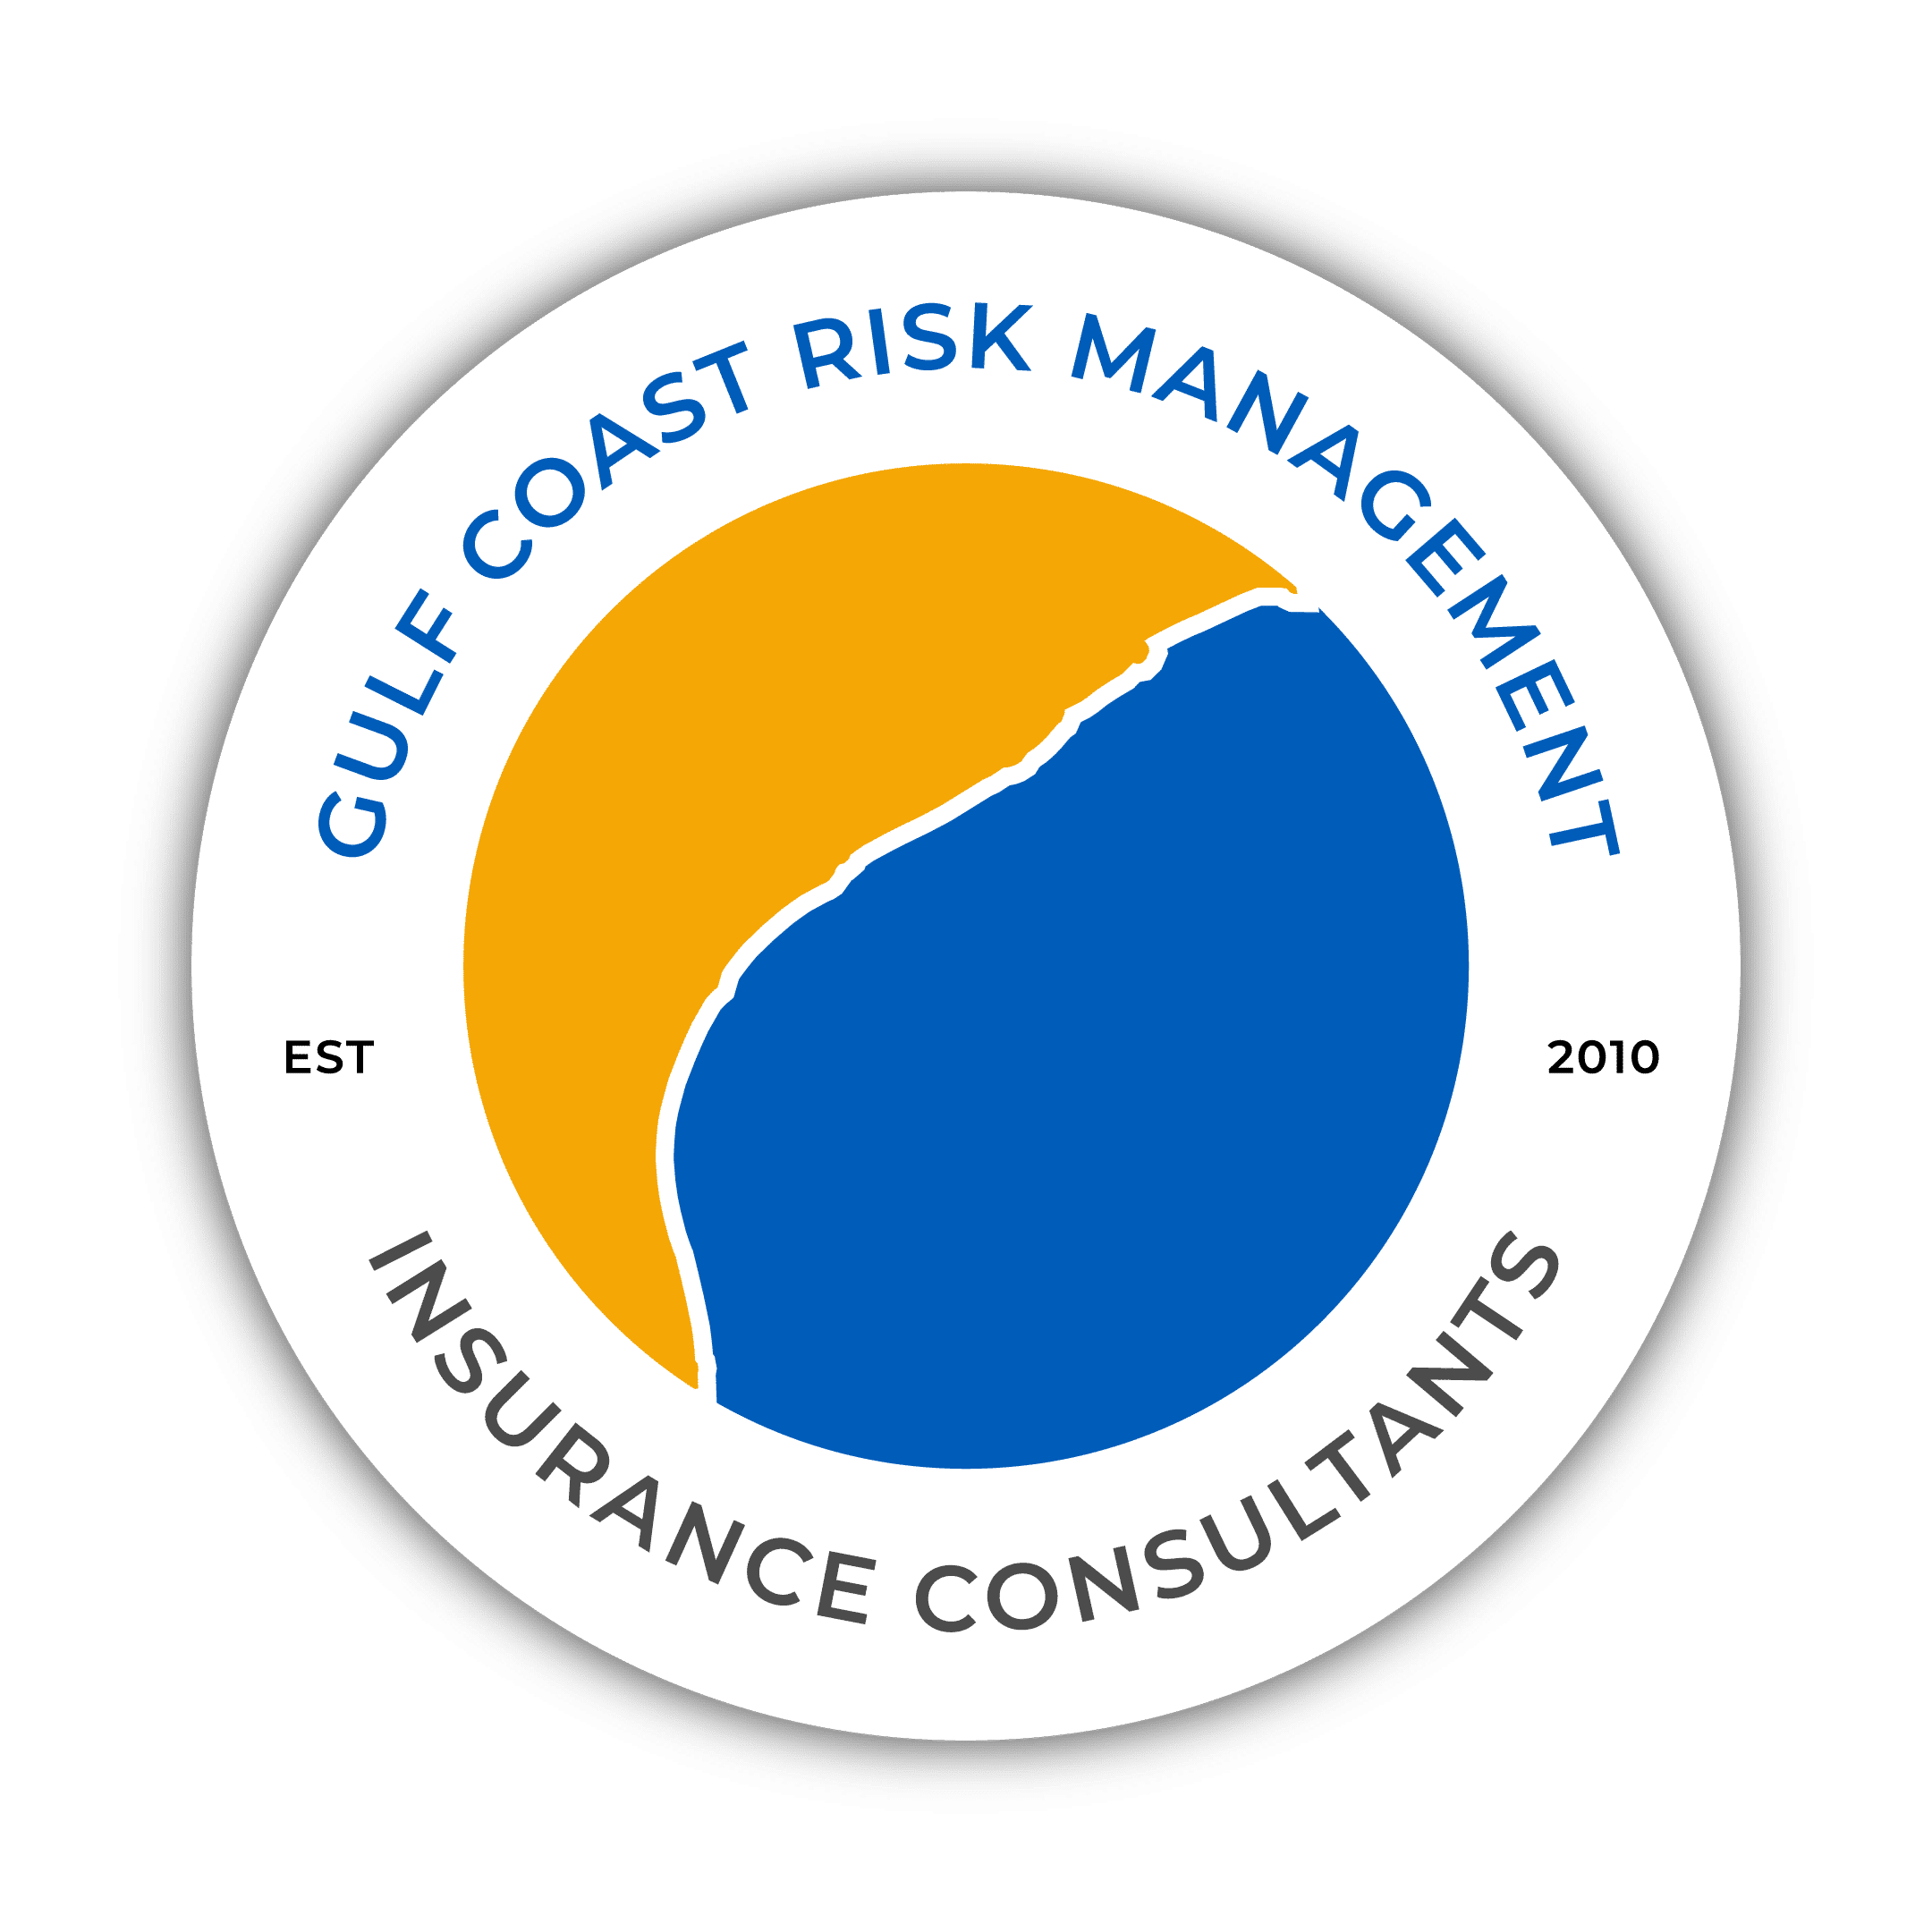 Gulf Coast Risk Management, LLC